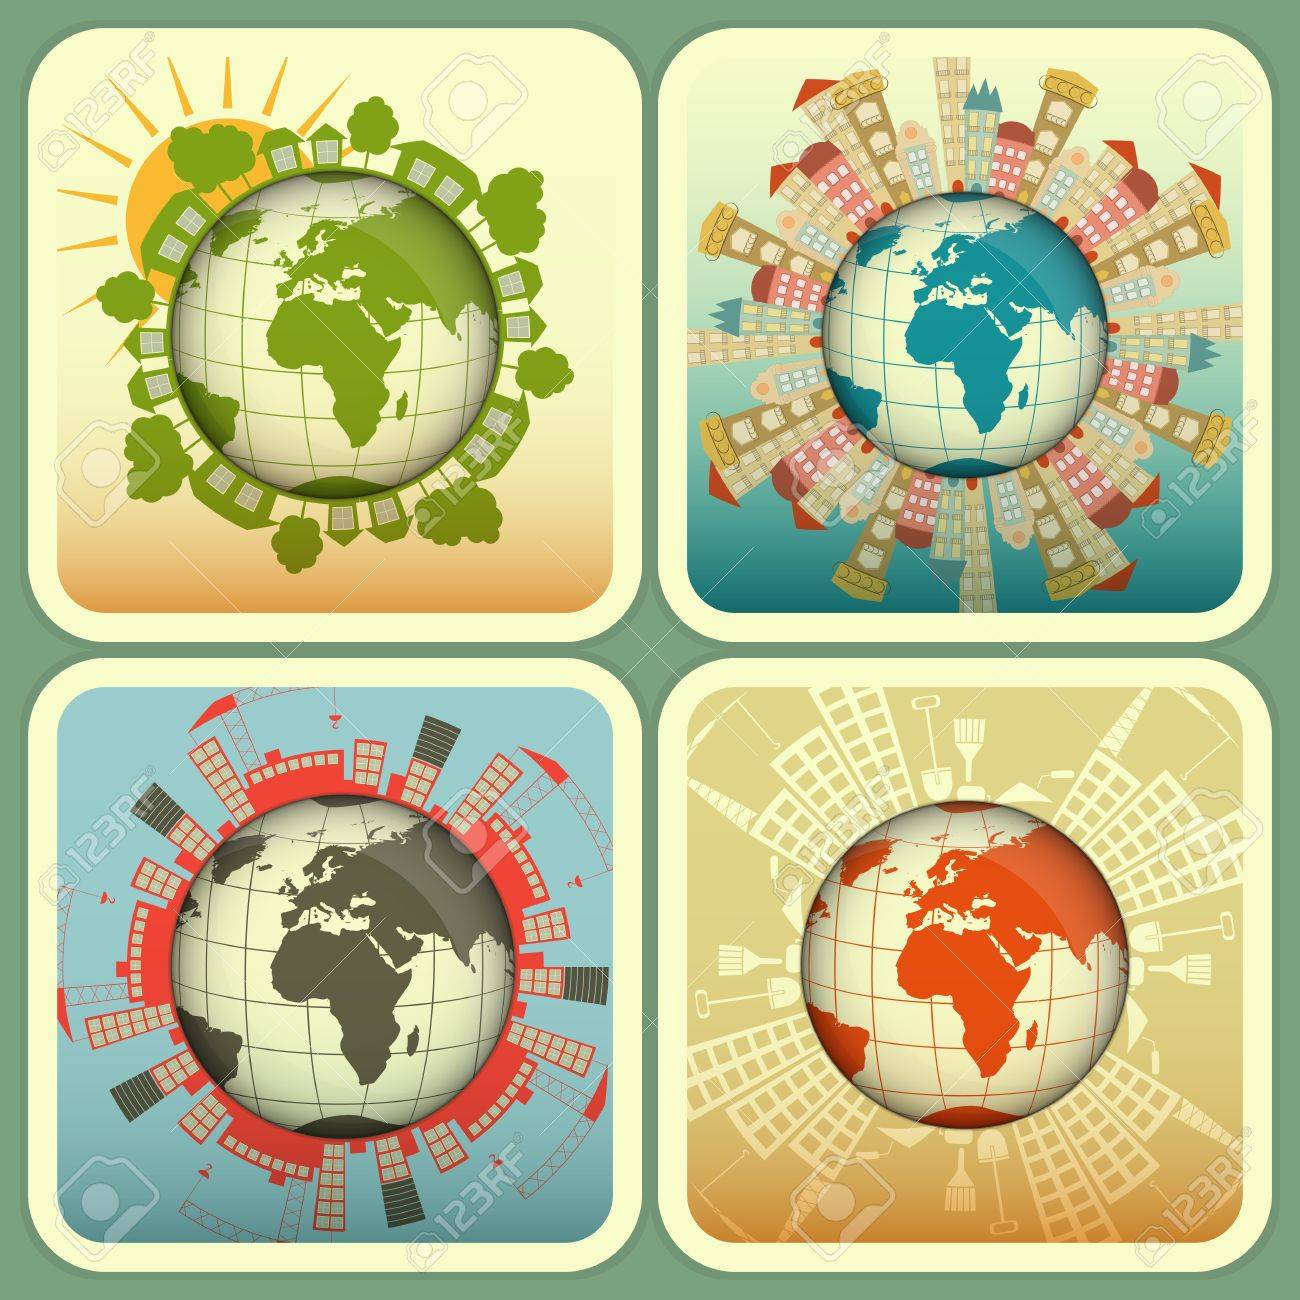 Concept of Urban and Rural Construction. Four Square Icons - Houses around the Planet Earth.  Illustration. Stock Vector - 17973526